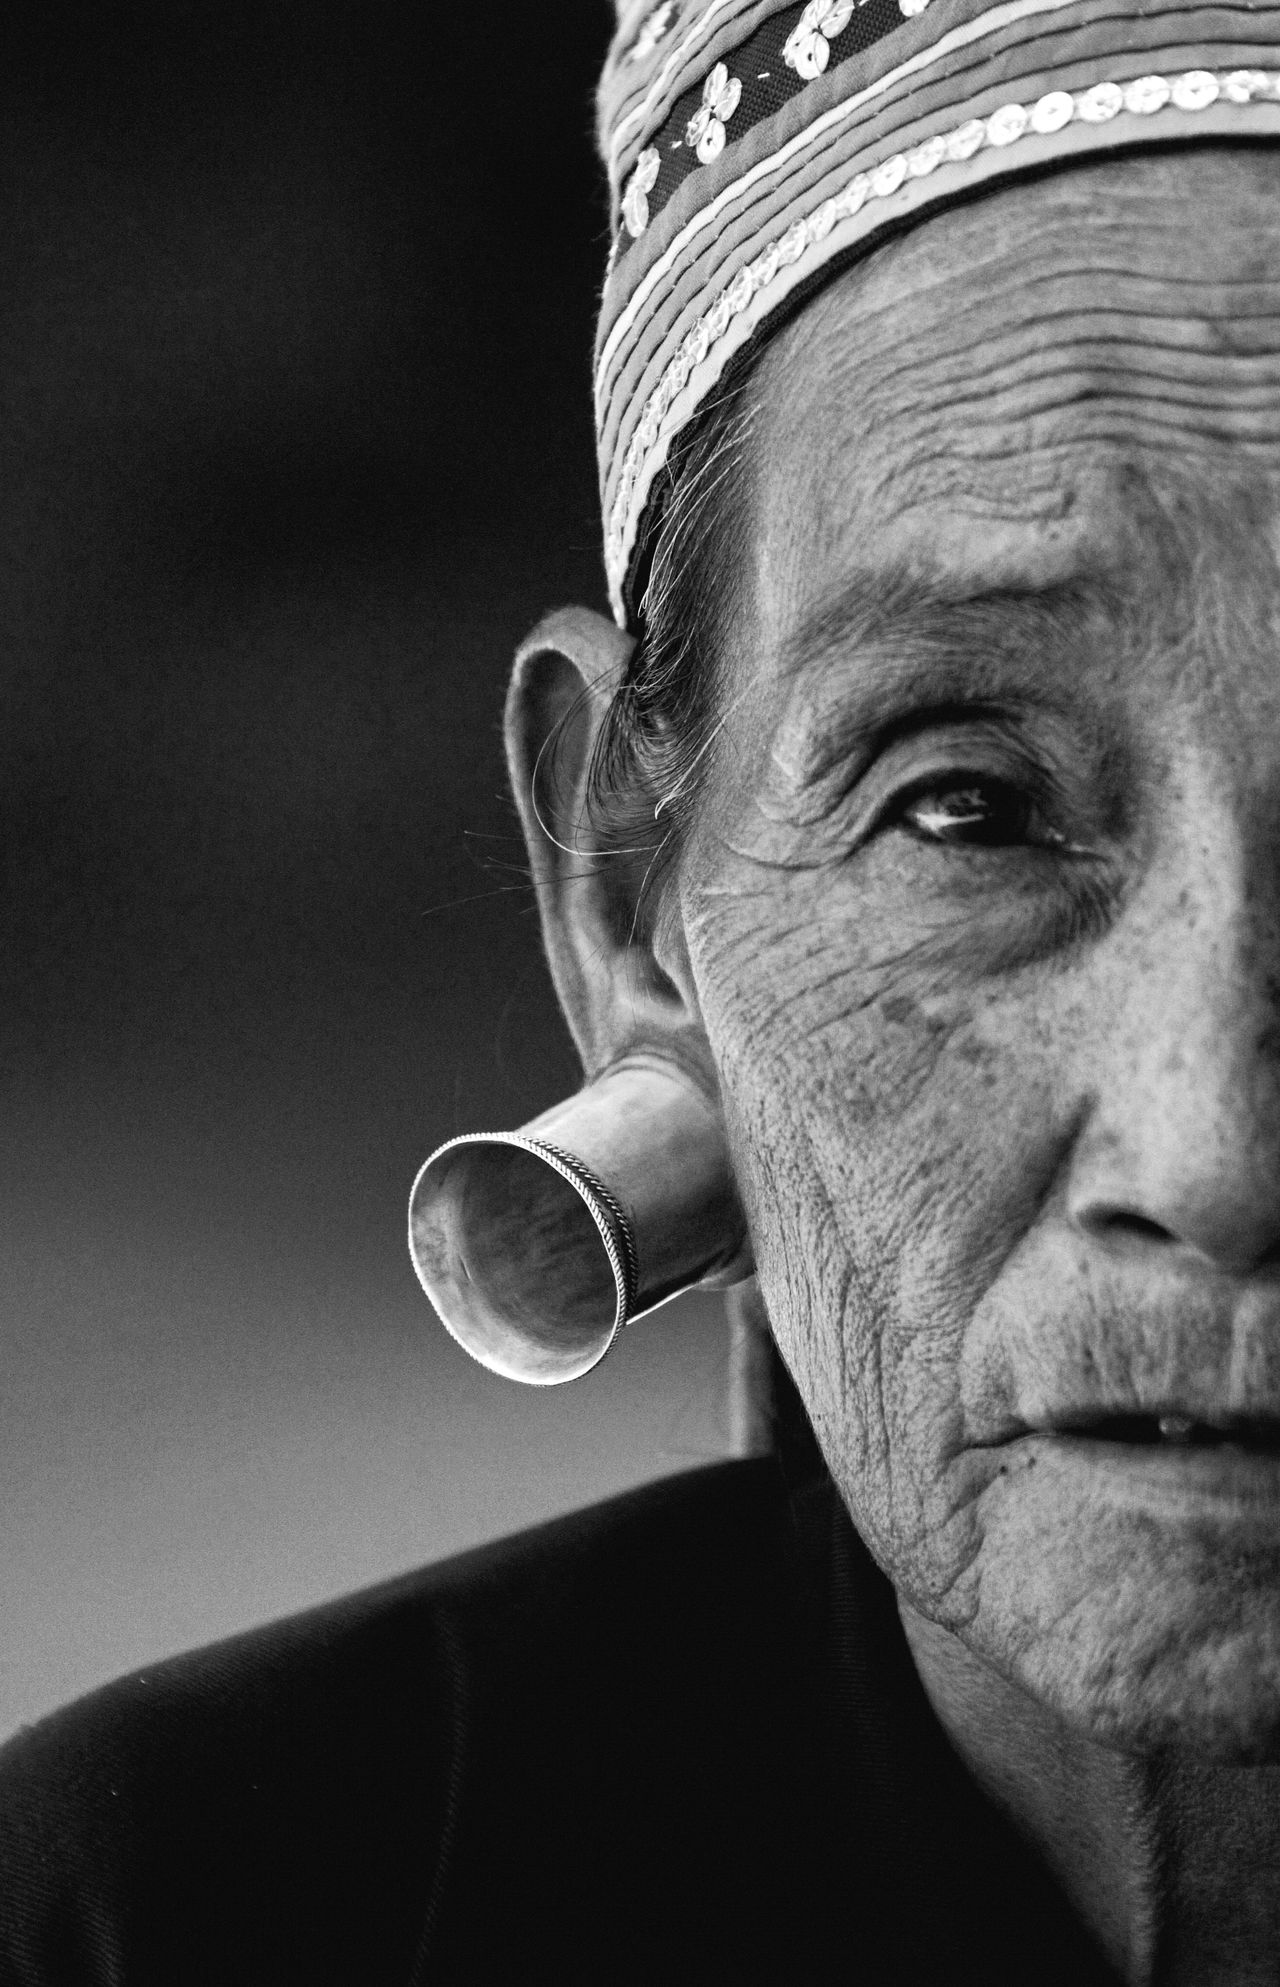 Portrait Headshot Looking At Camera One Person Close-up Woman Traditional Culture Traditional Clothing Hat People Outdoors Day Adult Portrait Of A Woman Portraits Black And White Monochrome EyeEm Best Shots Check This Out Elderly Earings Tunnel Focus On Foreground in Long Neck Village , Thailand